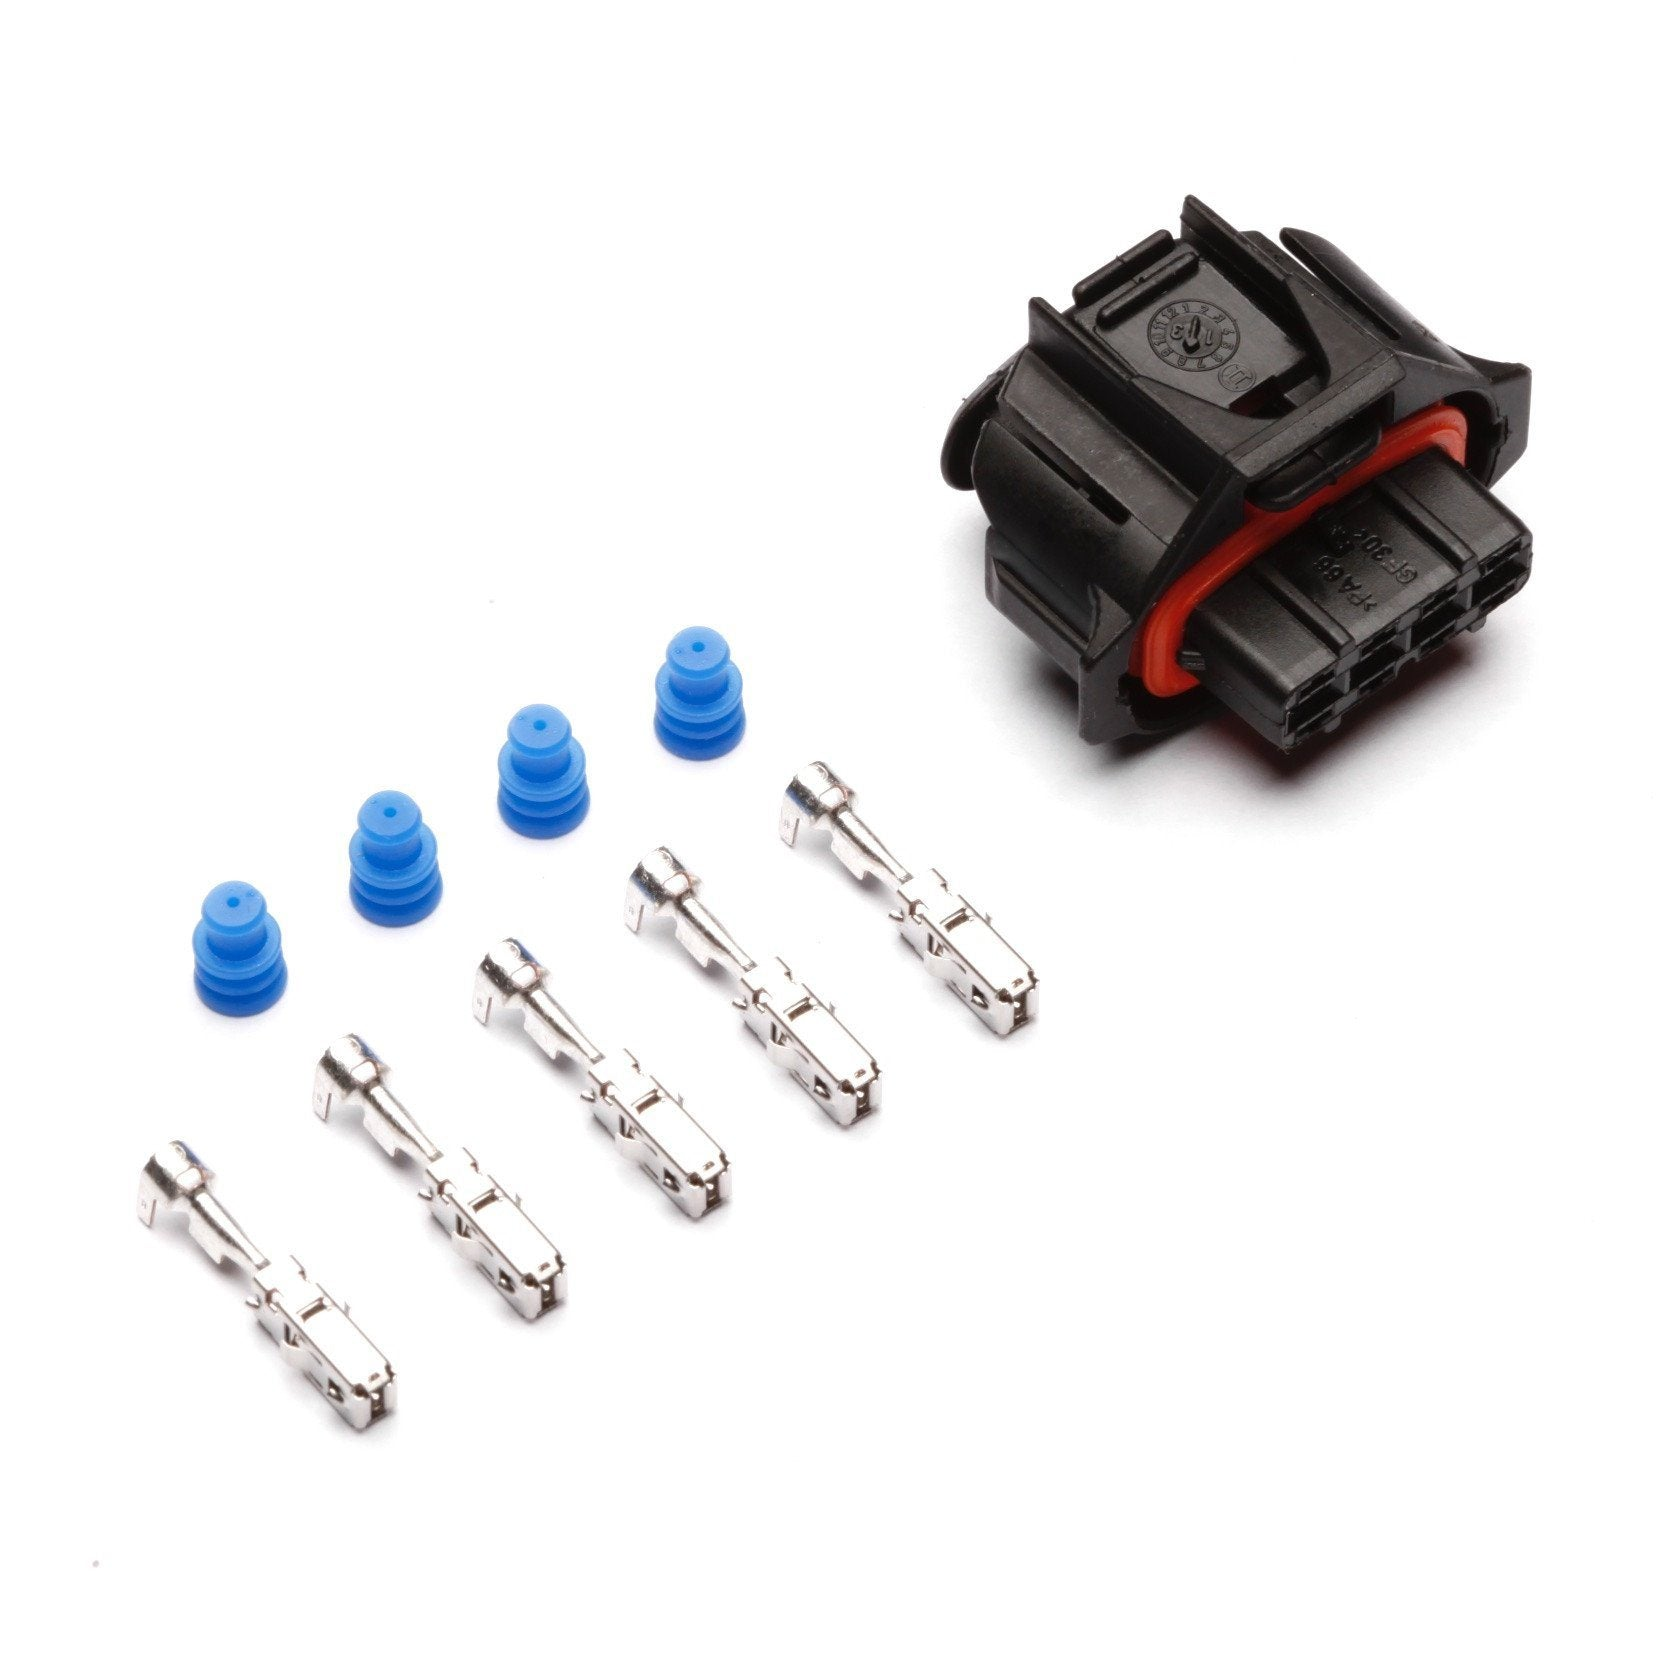 Connectors - Delphi/Bosch MAP/MAT Connector Kit